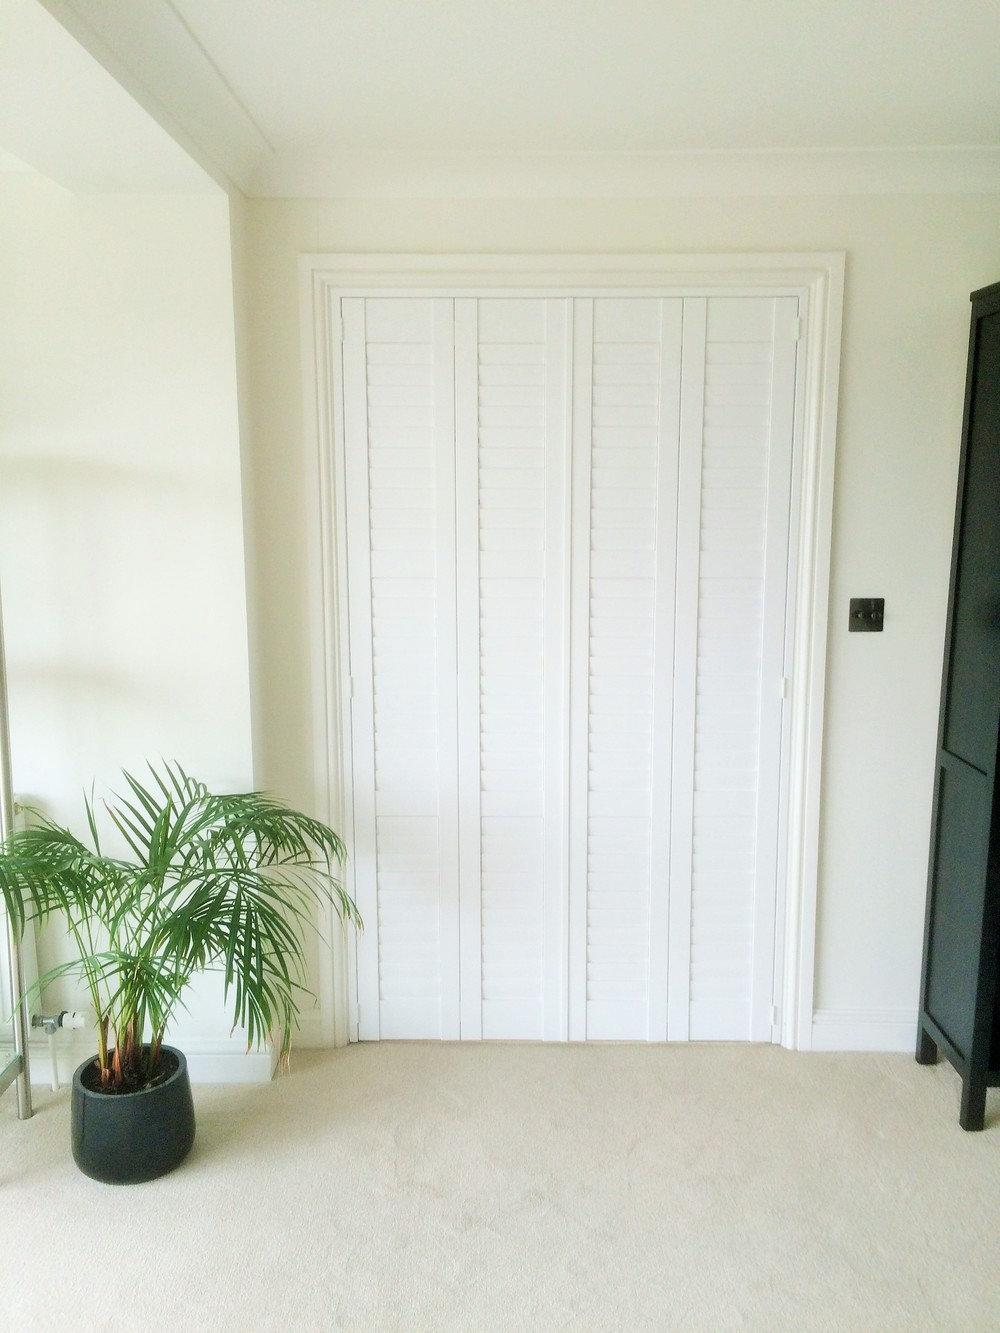 Shutters dividing a room